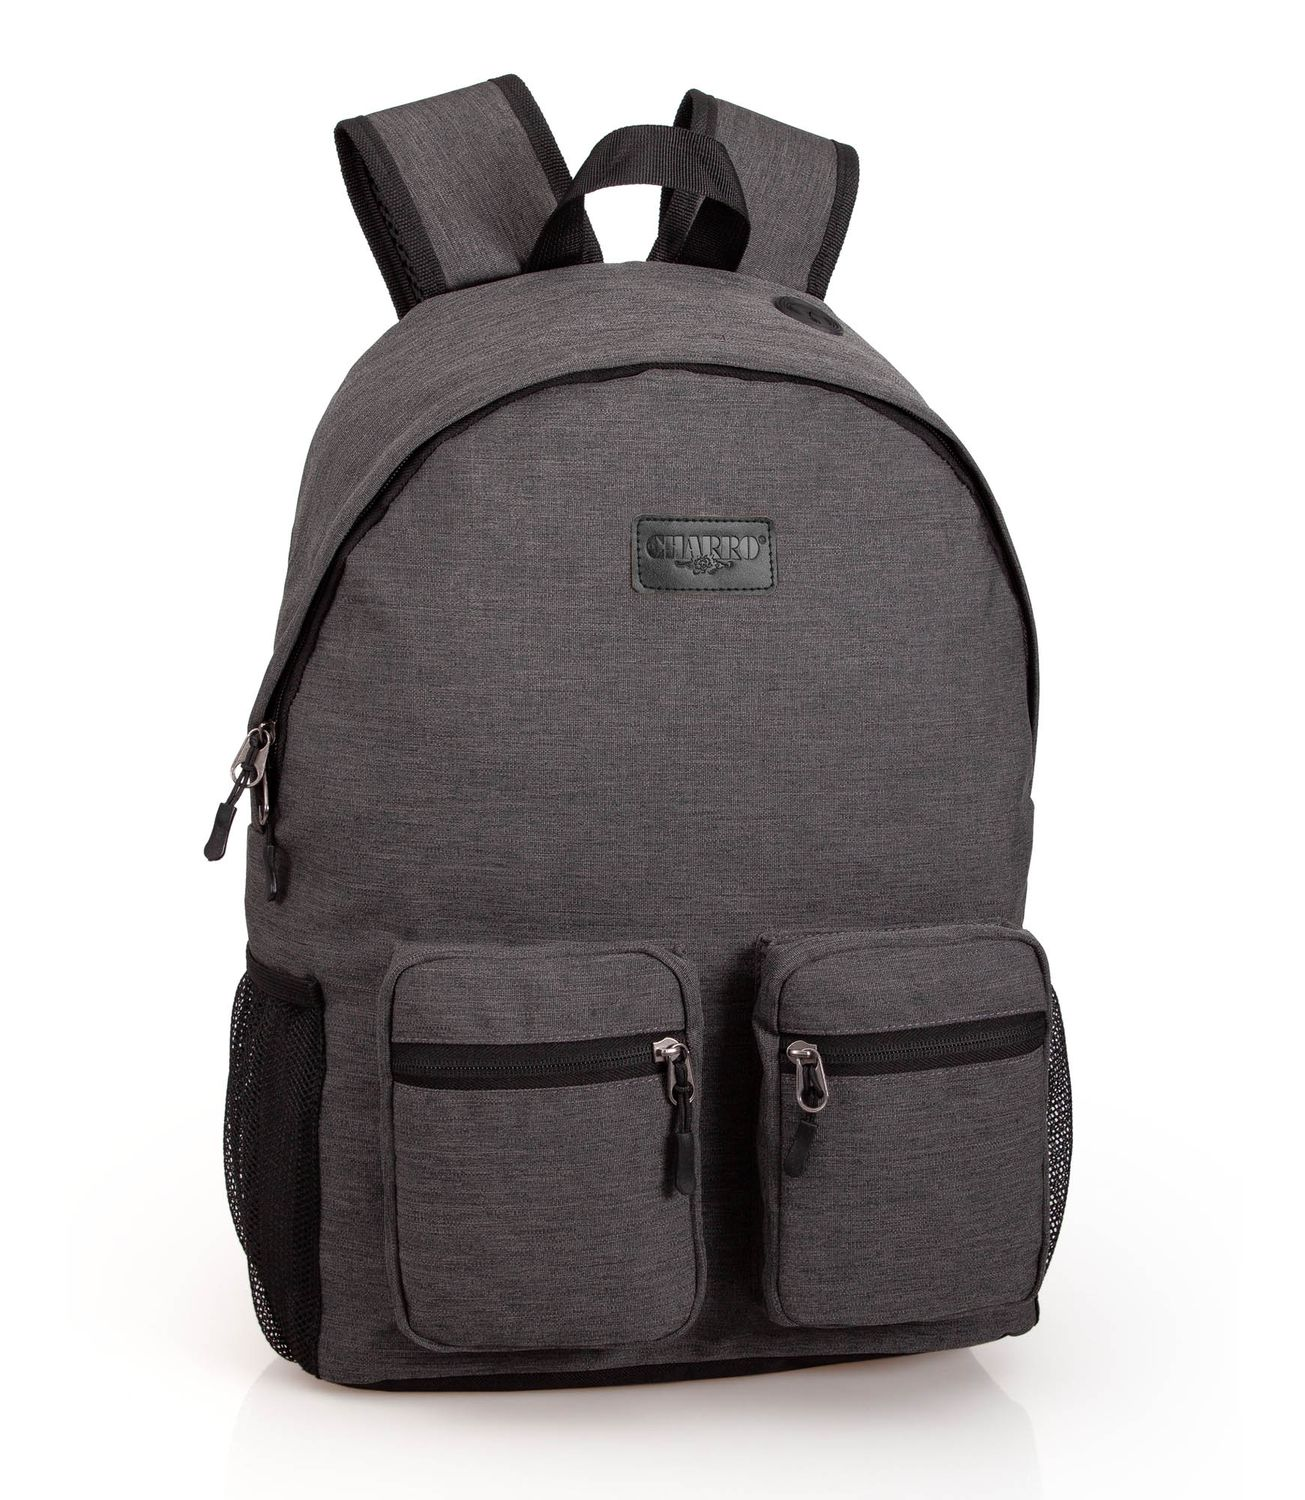 Backpack Rucksack Double Pocket EL CHARRO Grey – image 1